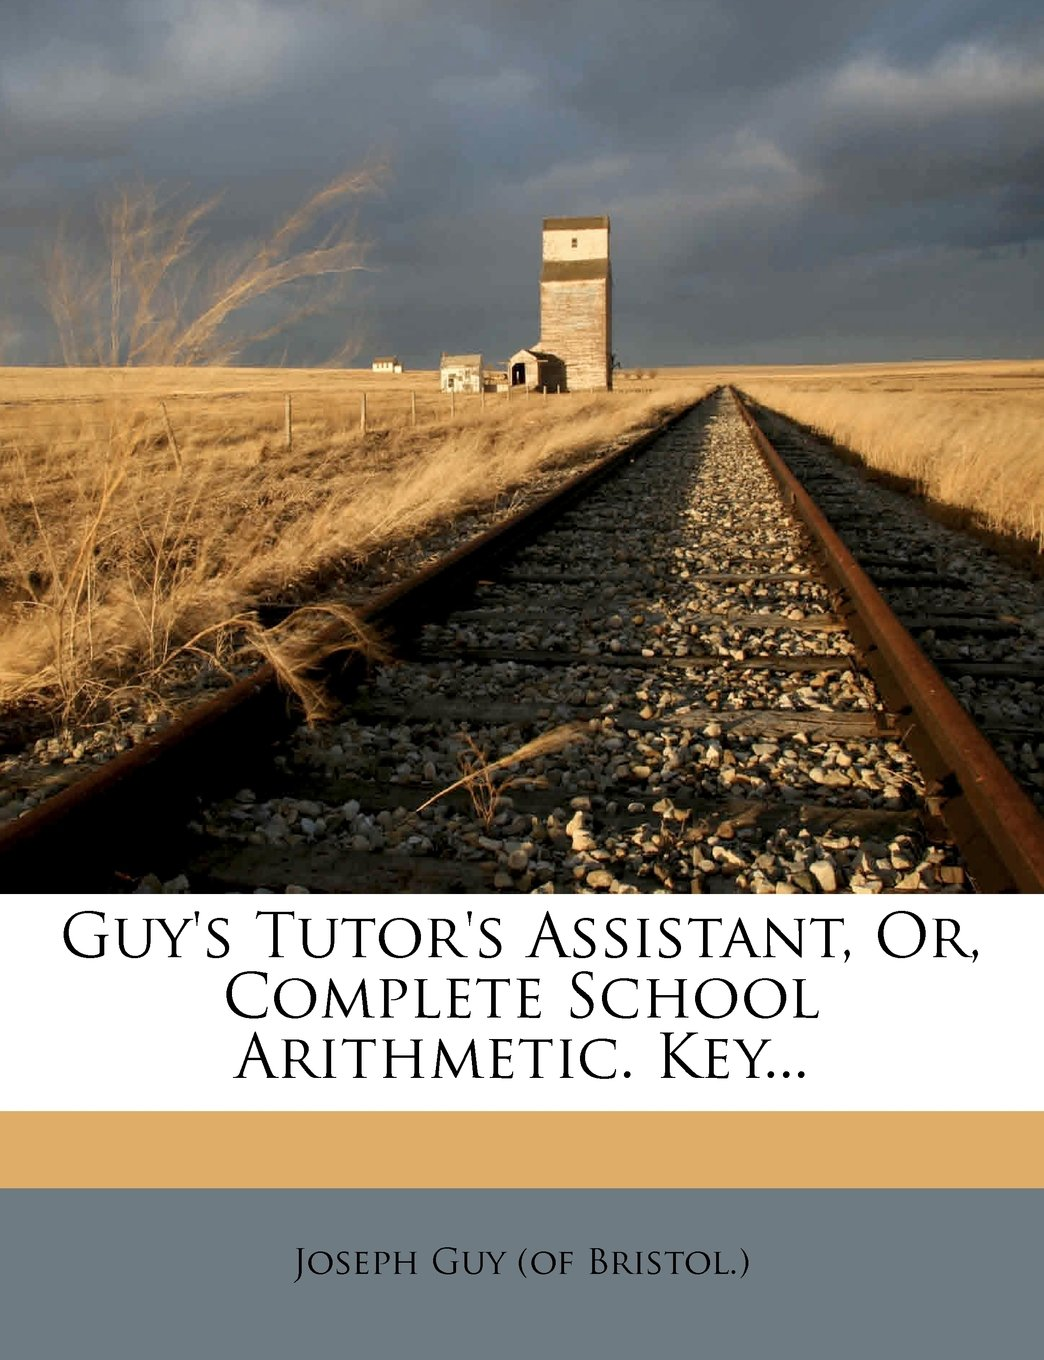 Read Online Guy's Tutor's Assistant, Or, Complete School Arithmetic. Key... (Chinese Edition) PDF